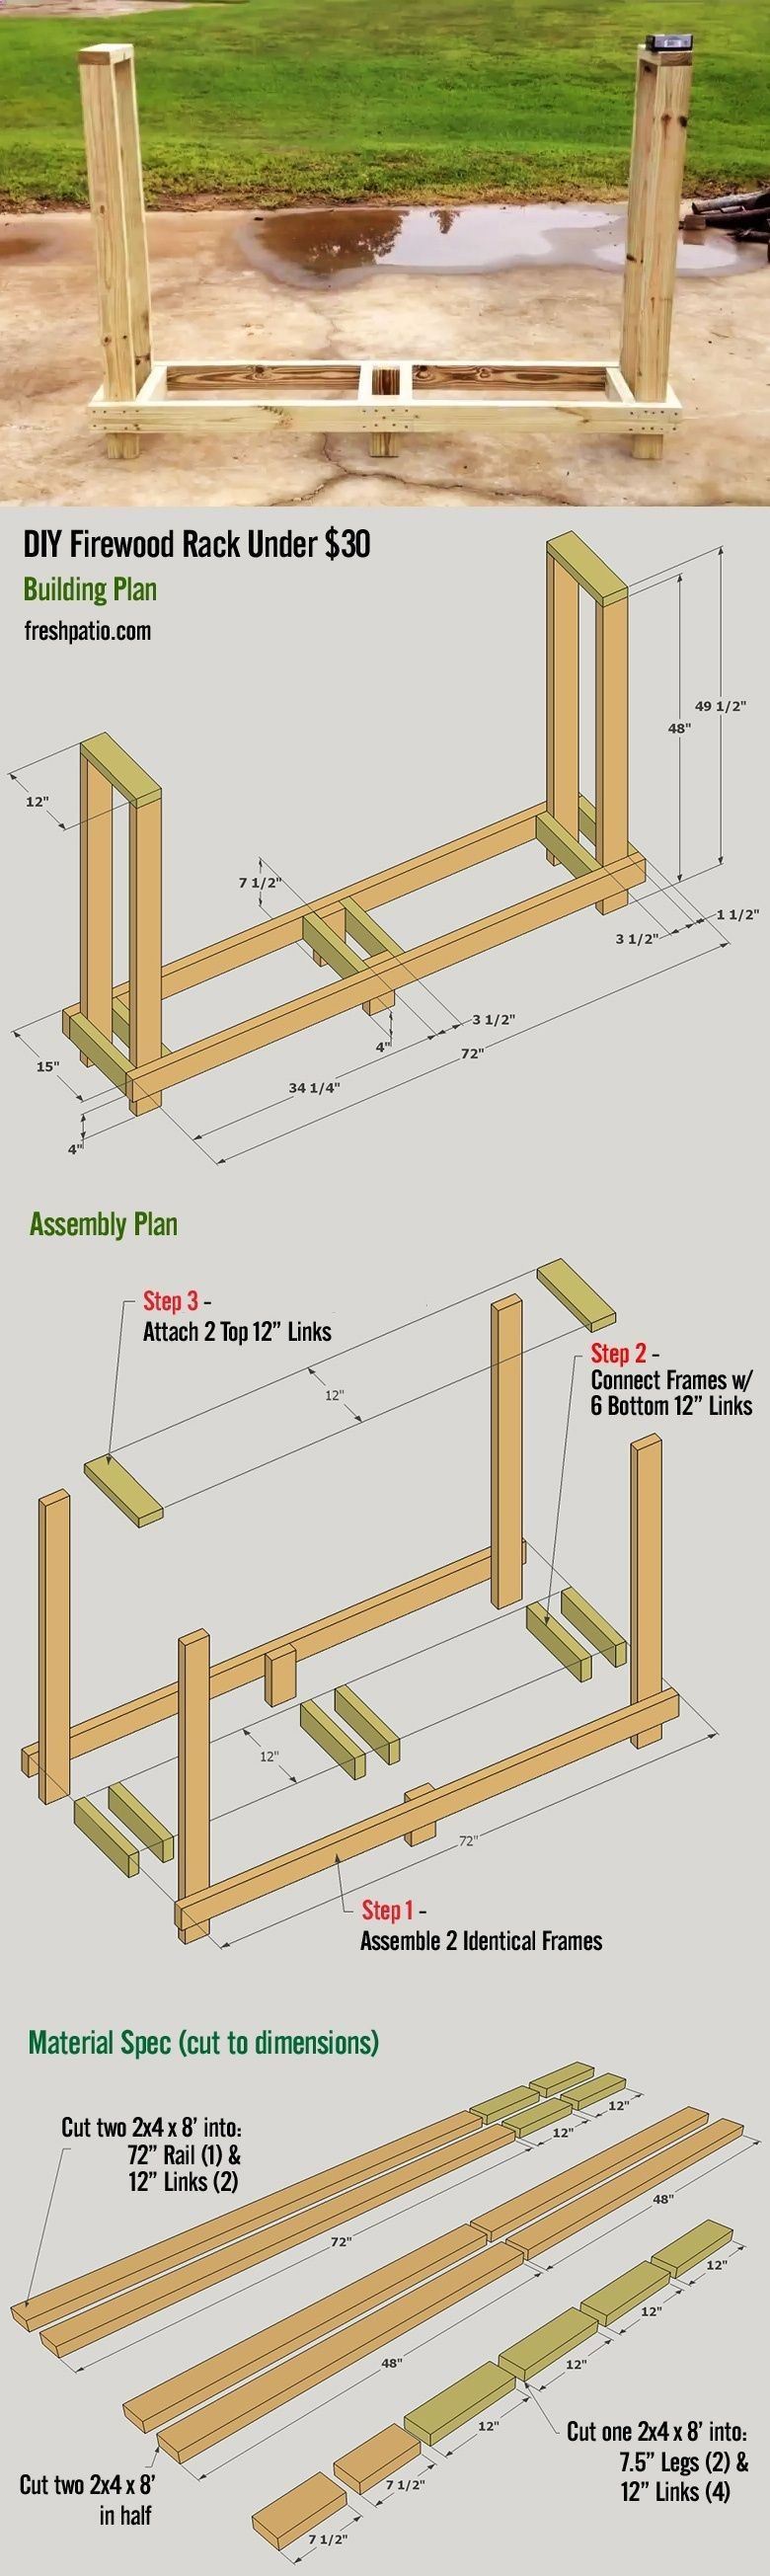 Shed Diy  Free Firewood Rack Plan  Easy To